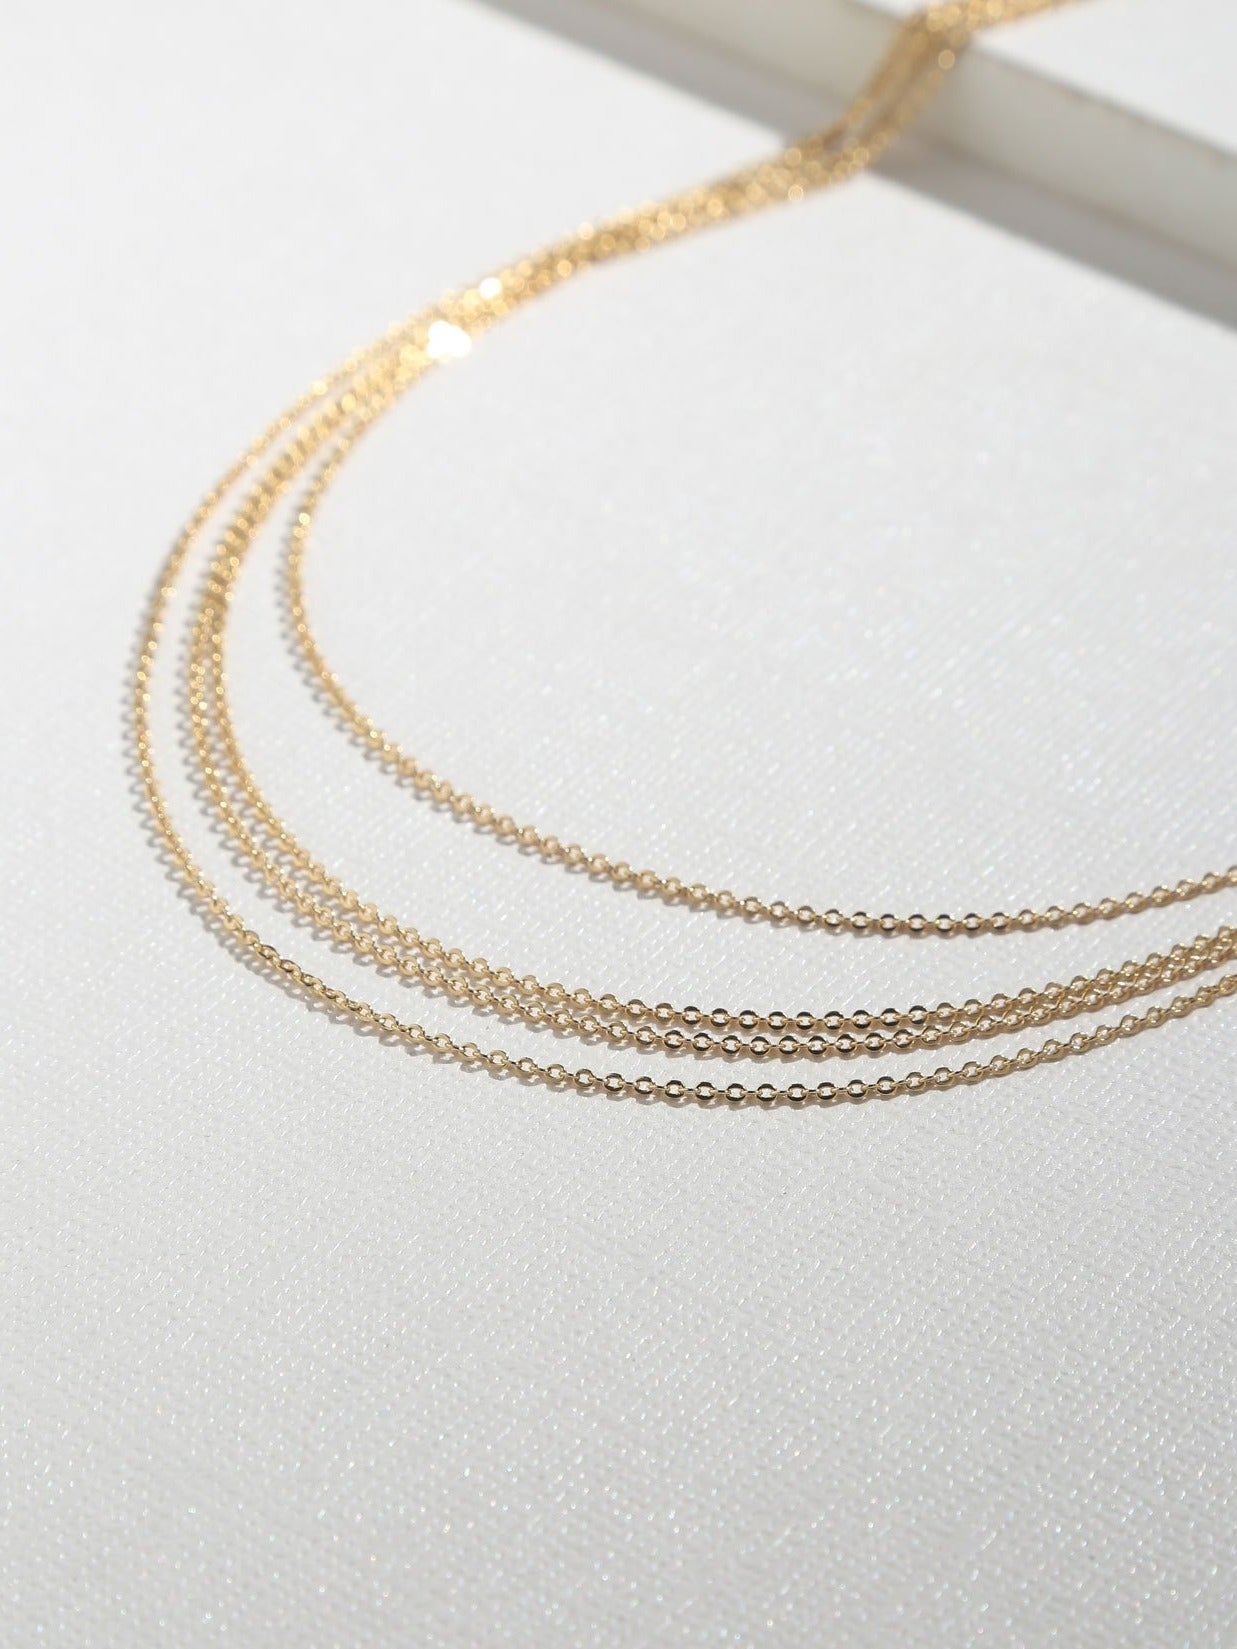 The Carmela Gold Layered Necklace